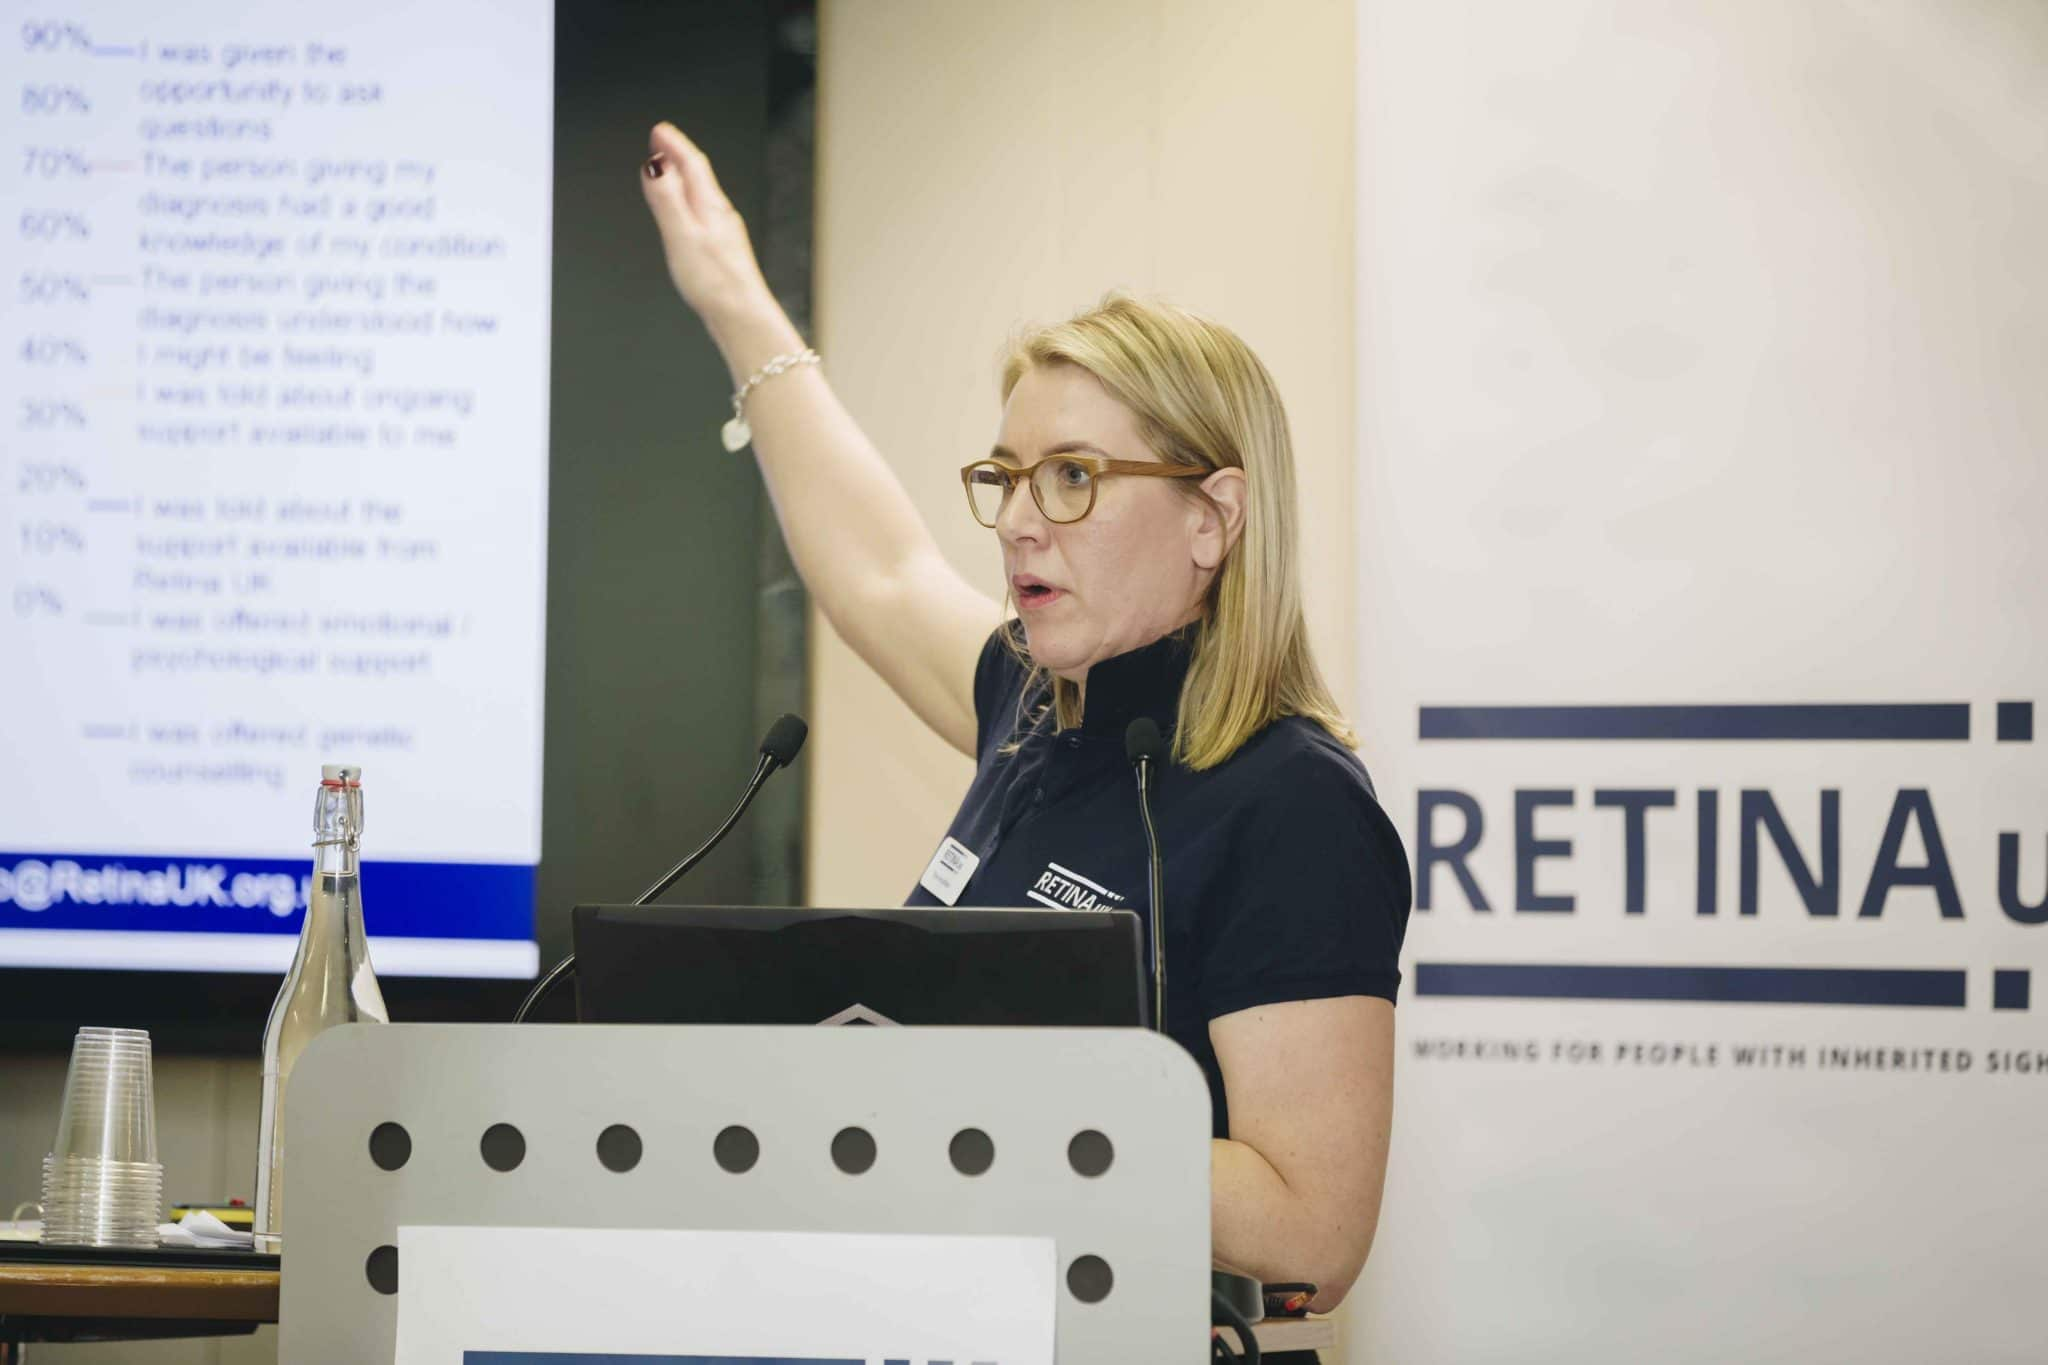 Tina Houlihan speaking at the Retina UK Professionals' Conference 2019